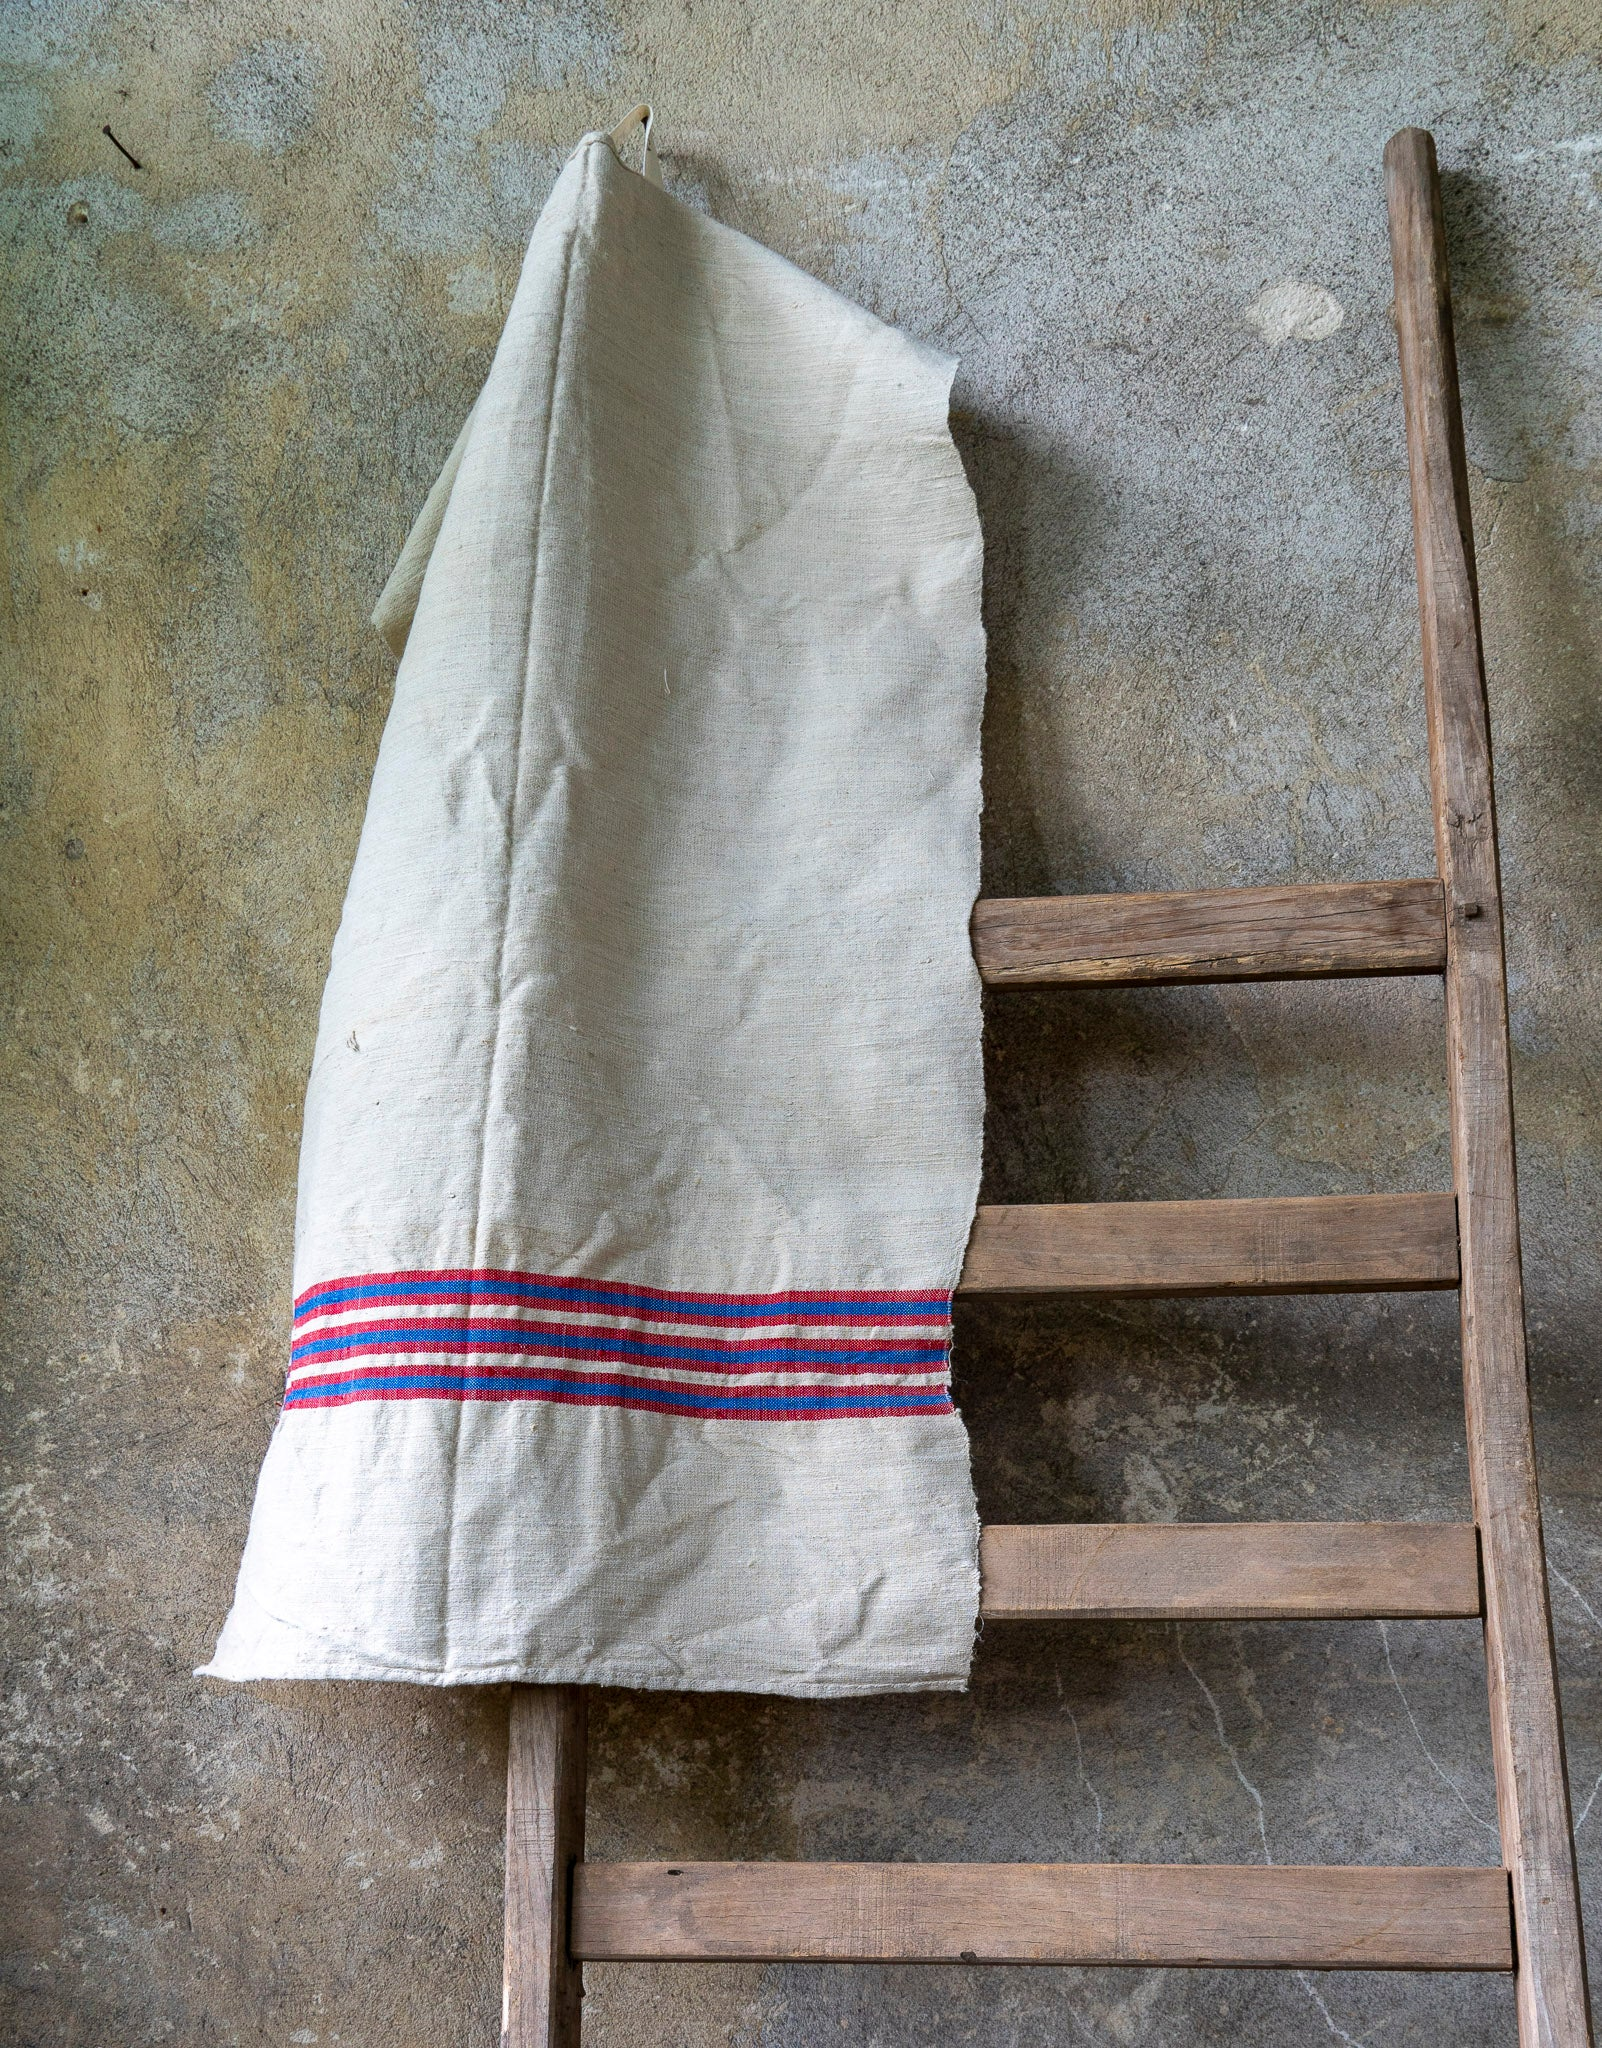 Towel: Handwoven antique Hungarian cotton and hemp